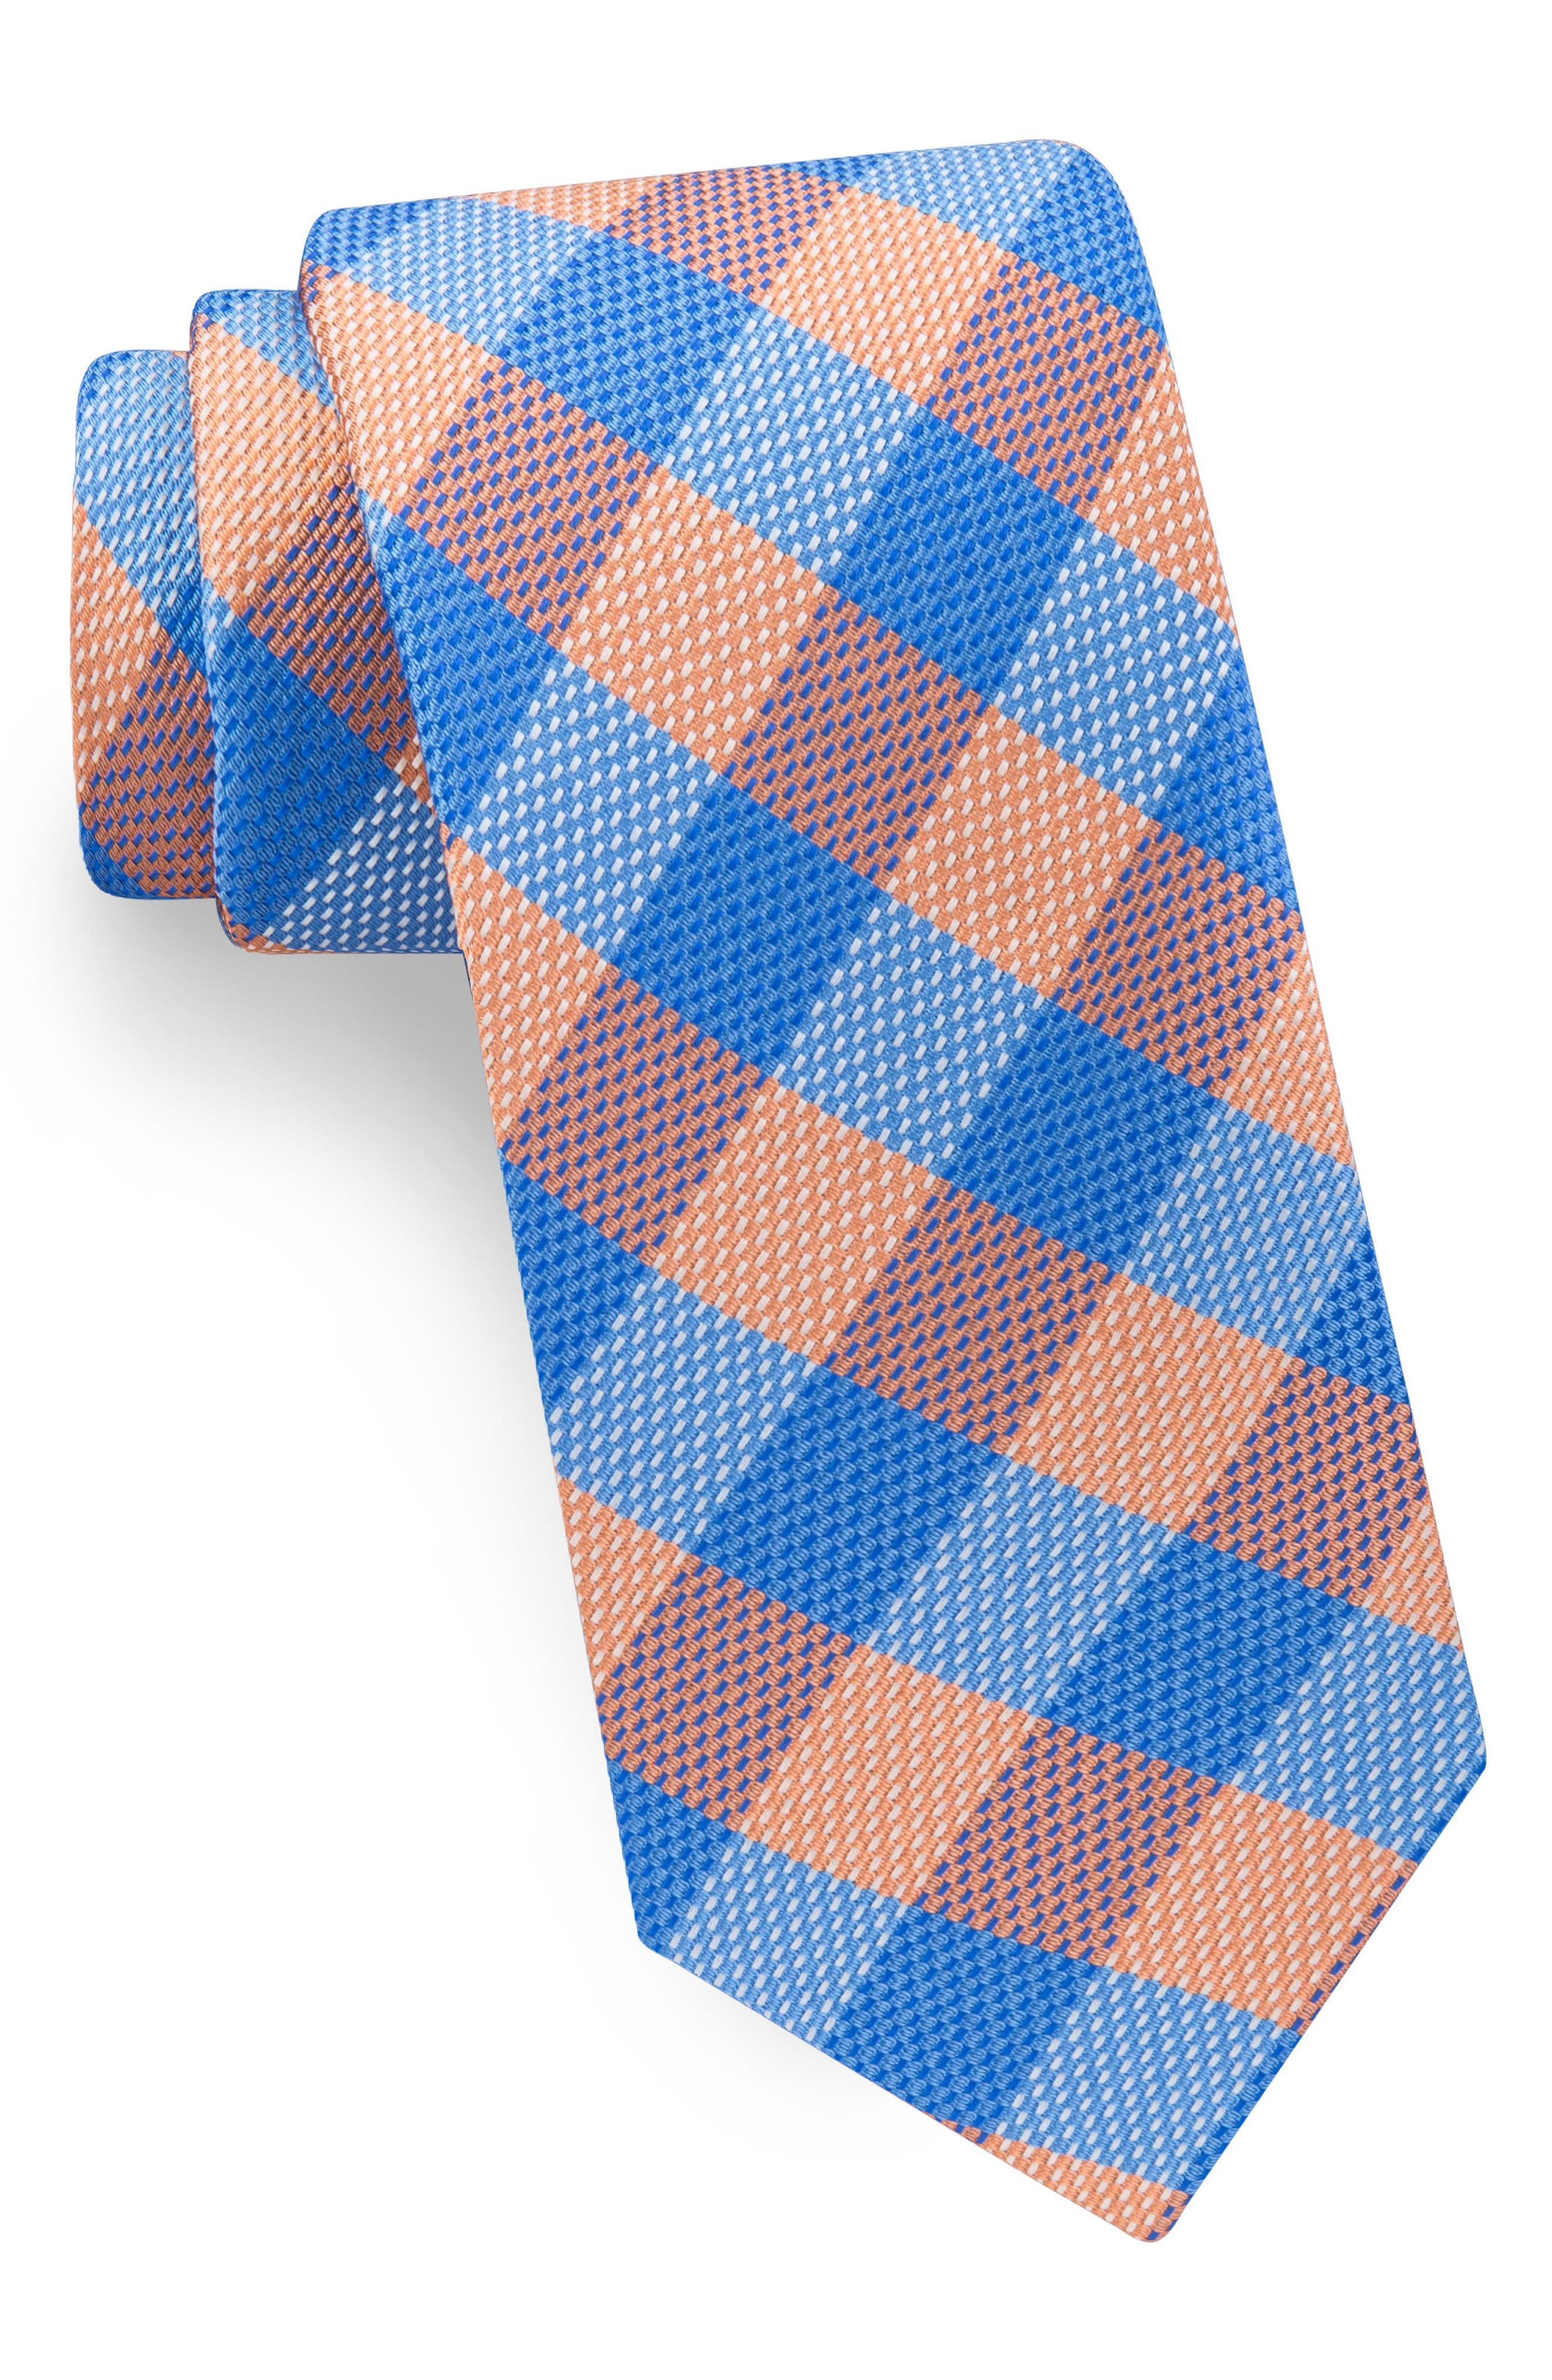 Derby Check Silk Tie,                         Main,                         color, Orange/ Blue